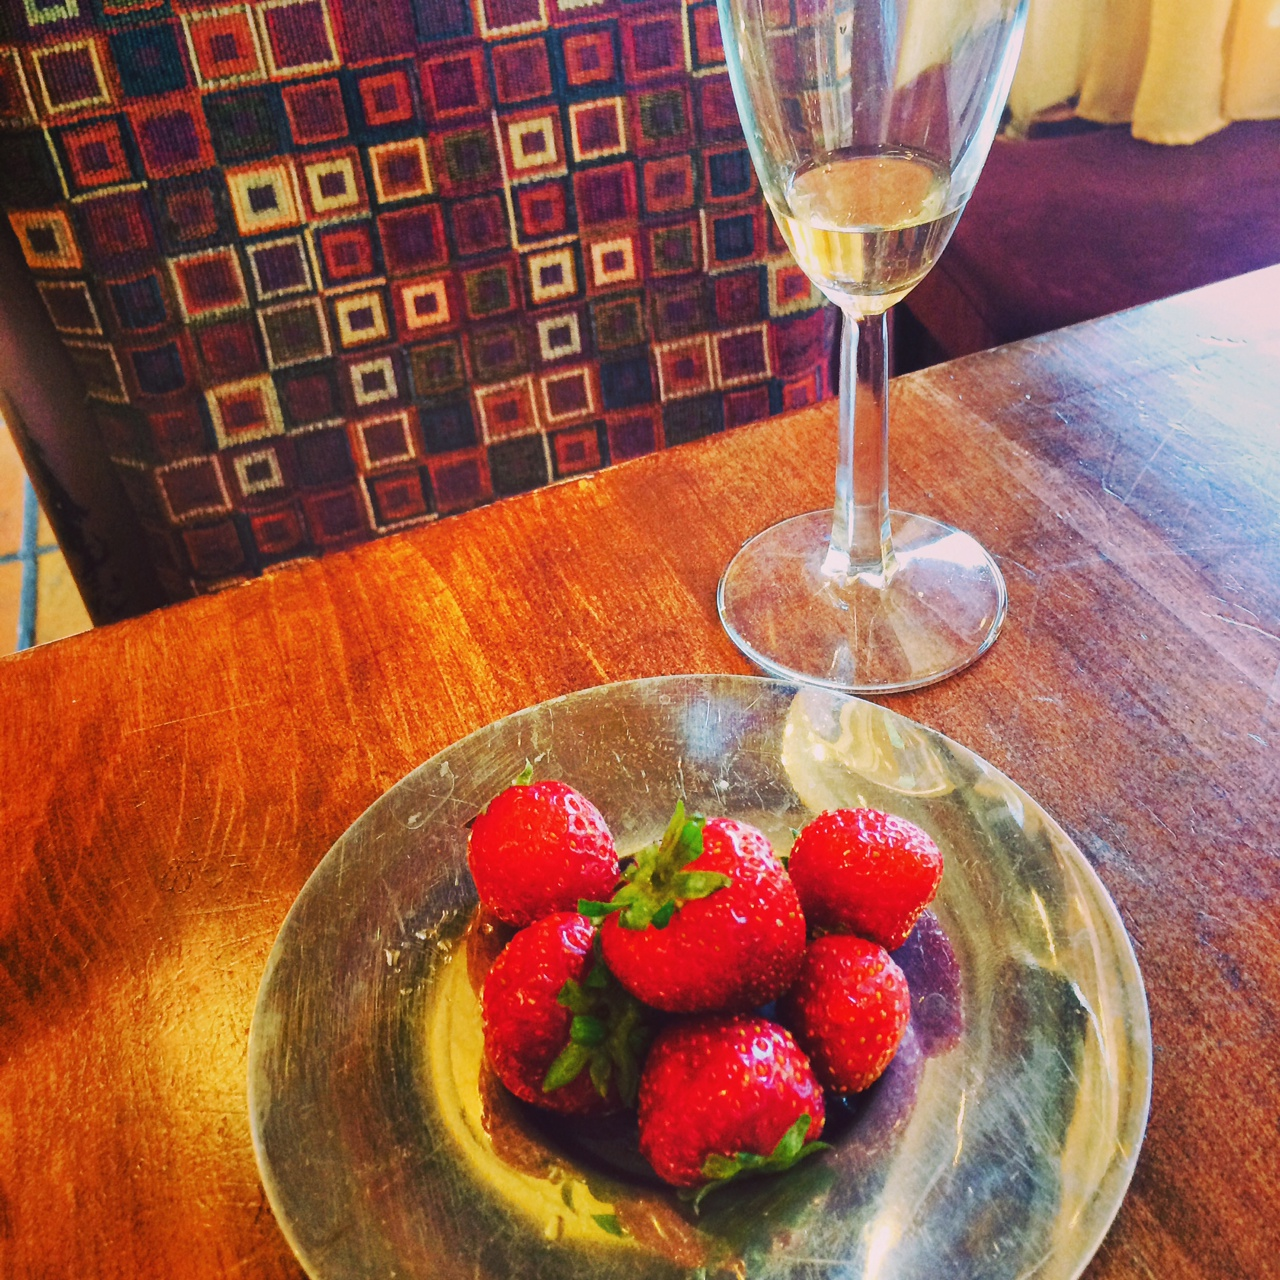 Local fresh strawberries, sparkling wine and a great way to spend Sunday afternoon